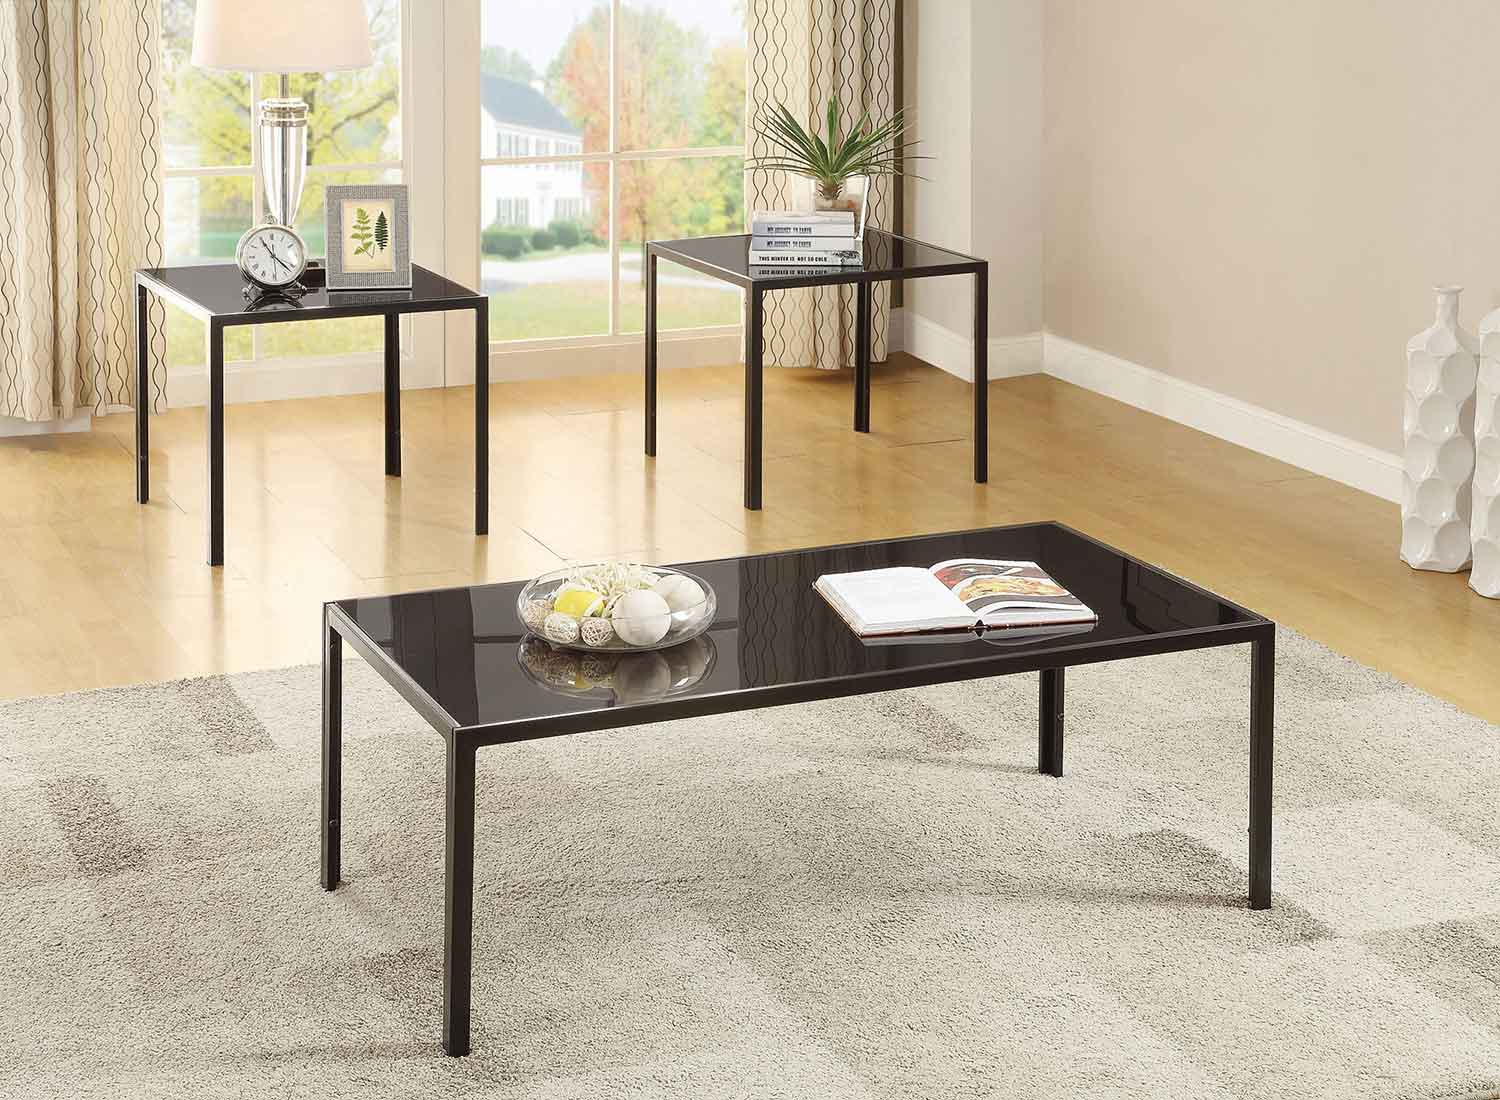 Coaster 720457 Occasional/Coffee Table Set - Antique Pewter